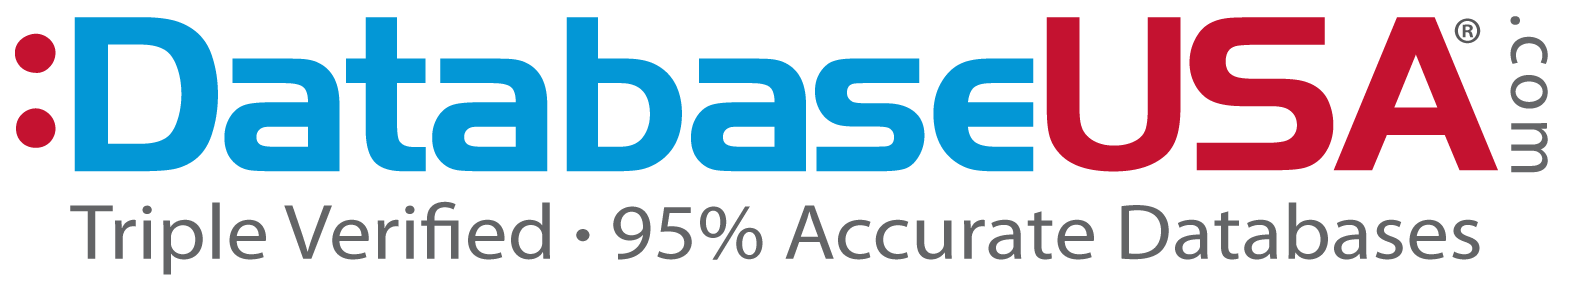 DatabaseUSA.com® sues Infogroup, Inc.® for Non-Disclosure of Receipt of Proprietary Data